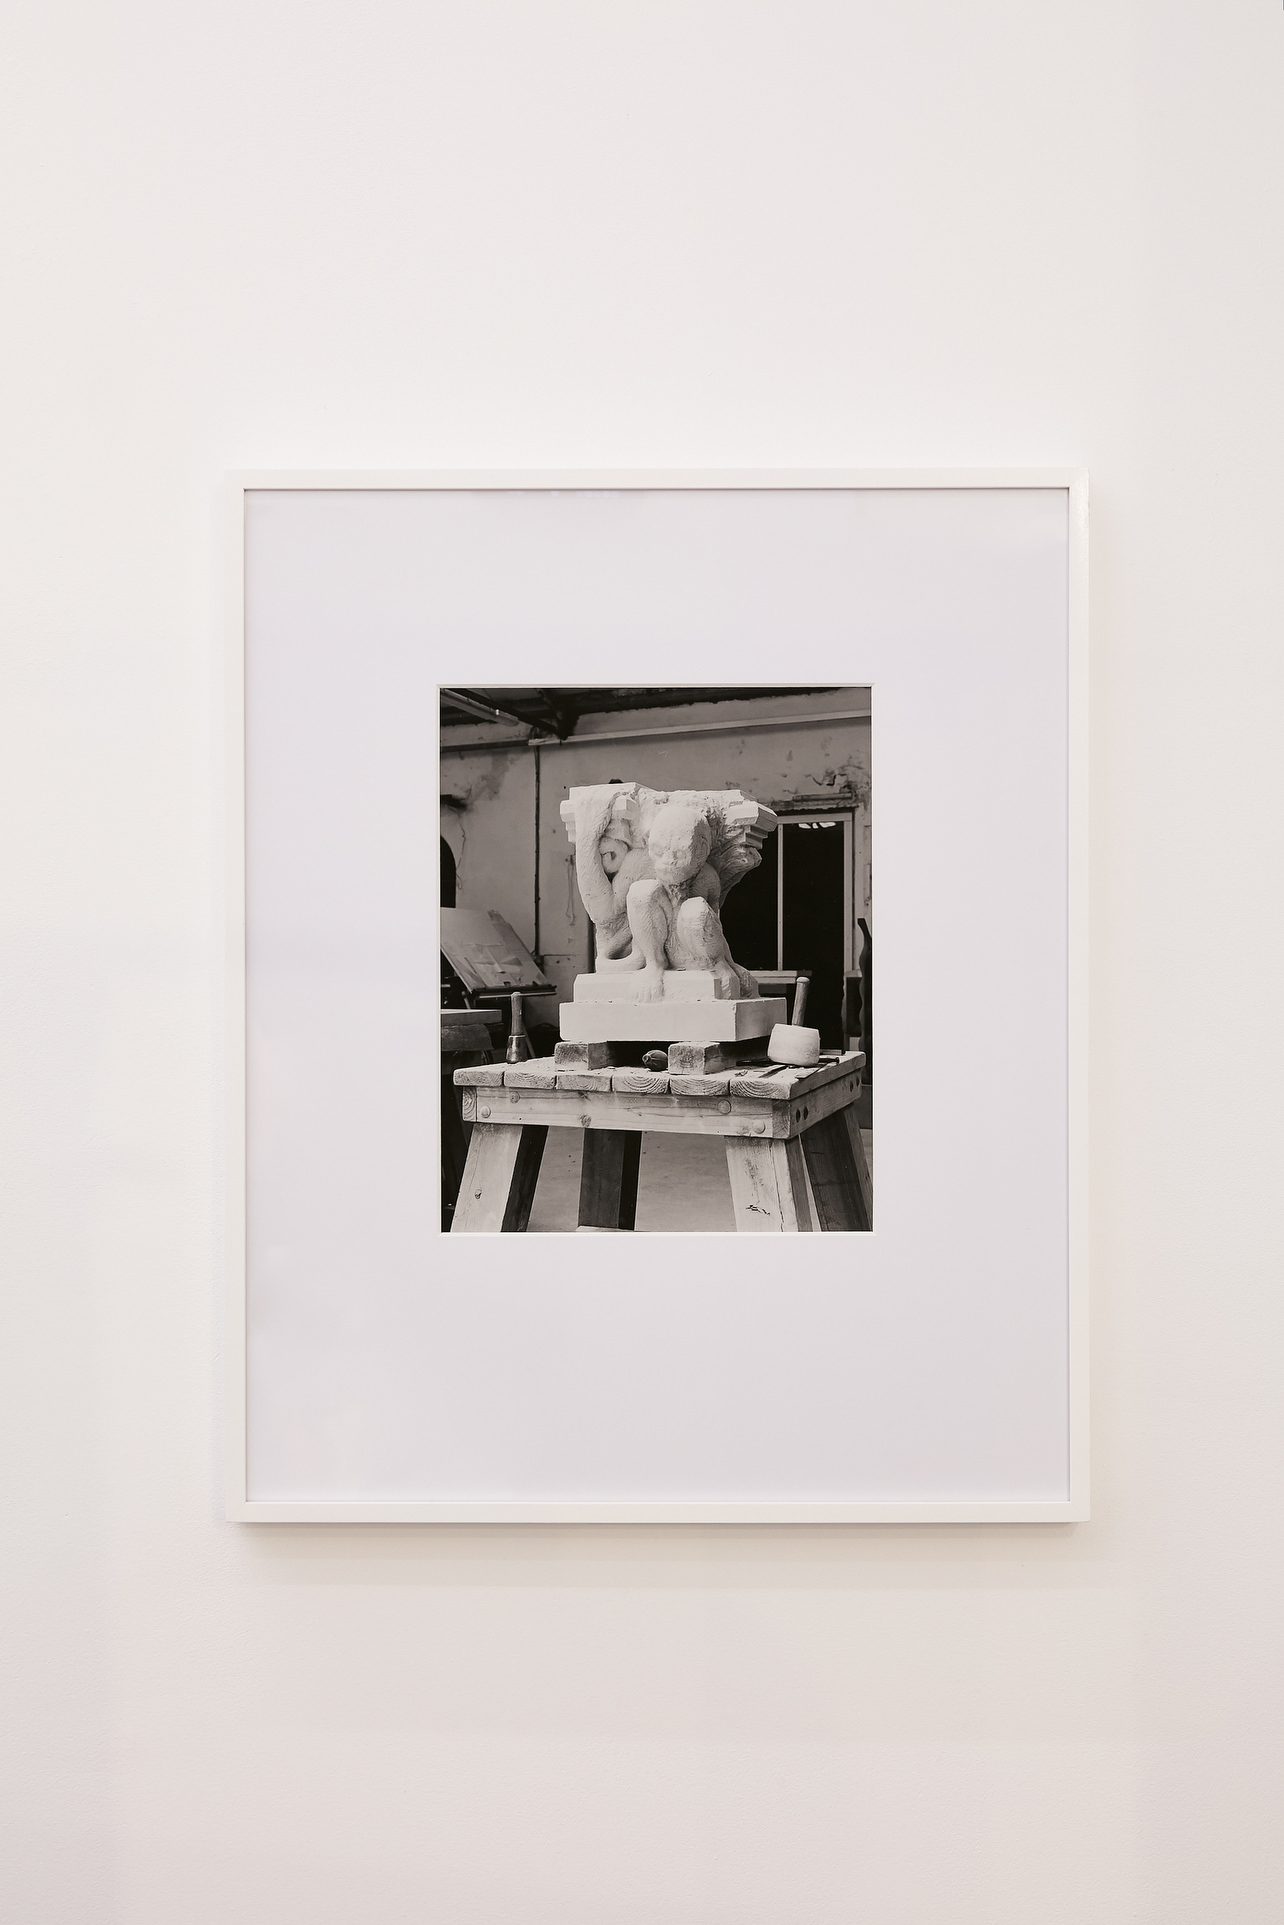 Sean Lynch, A Blow by Blow Account of Stonecarving in Oxford, 2013, black and white fibre print, framed, 67×55 cm framed 6